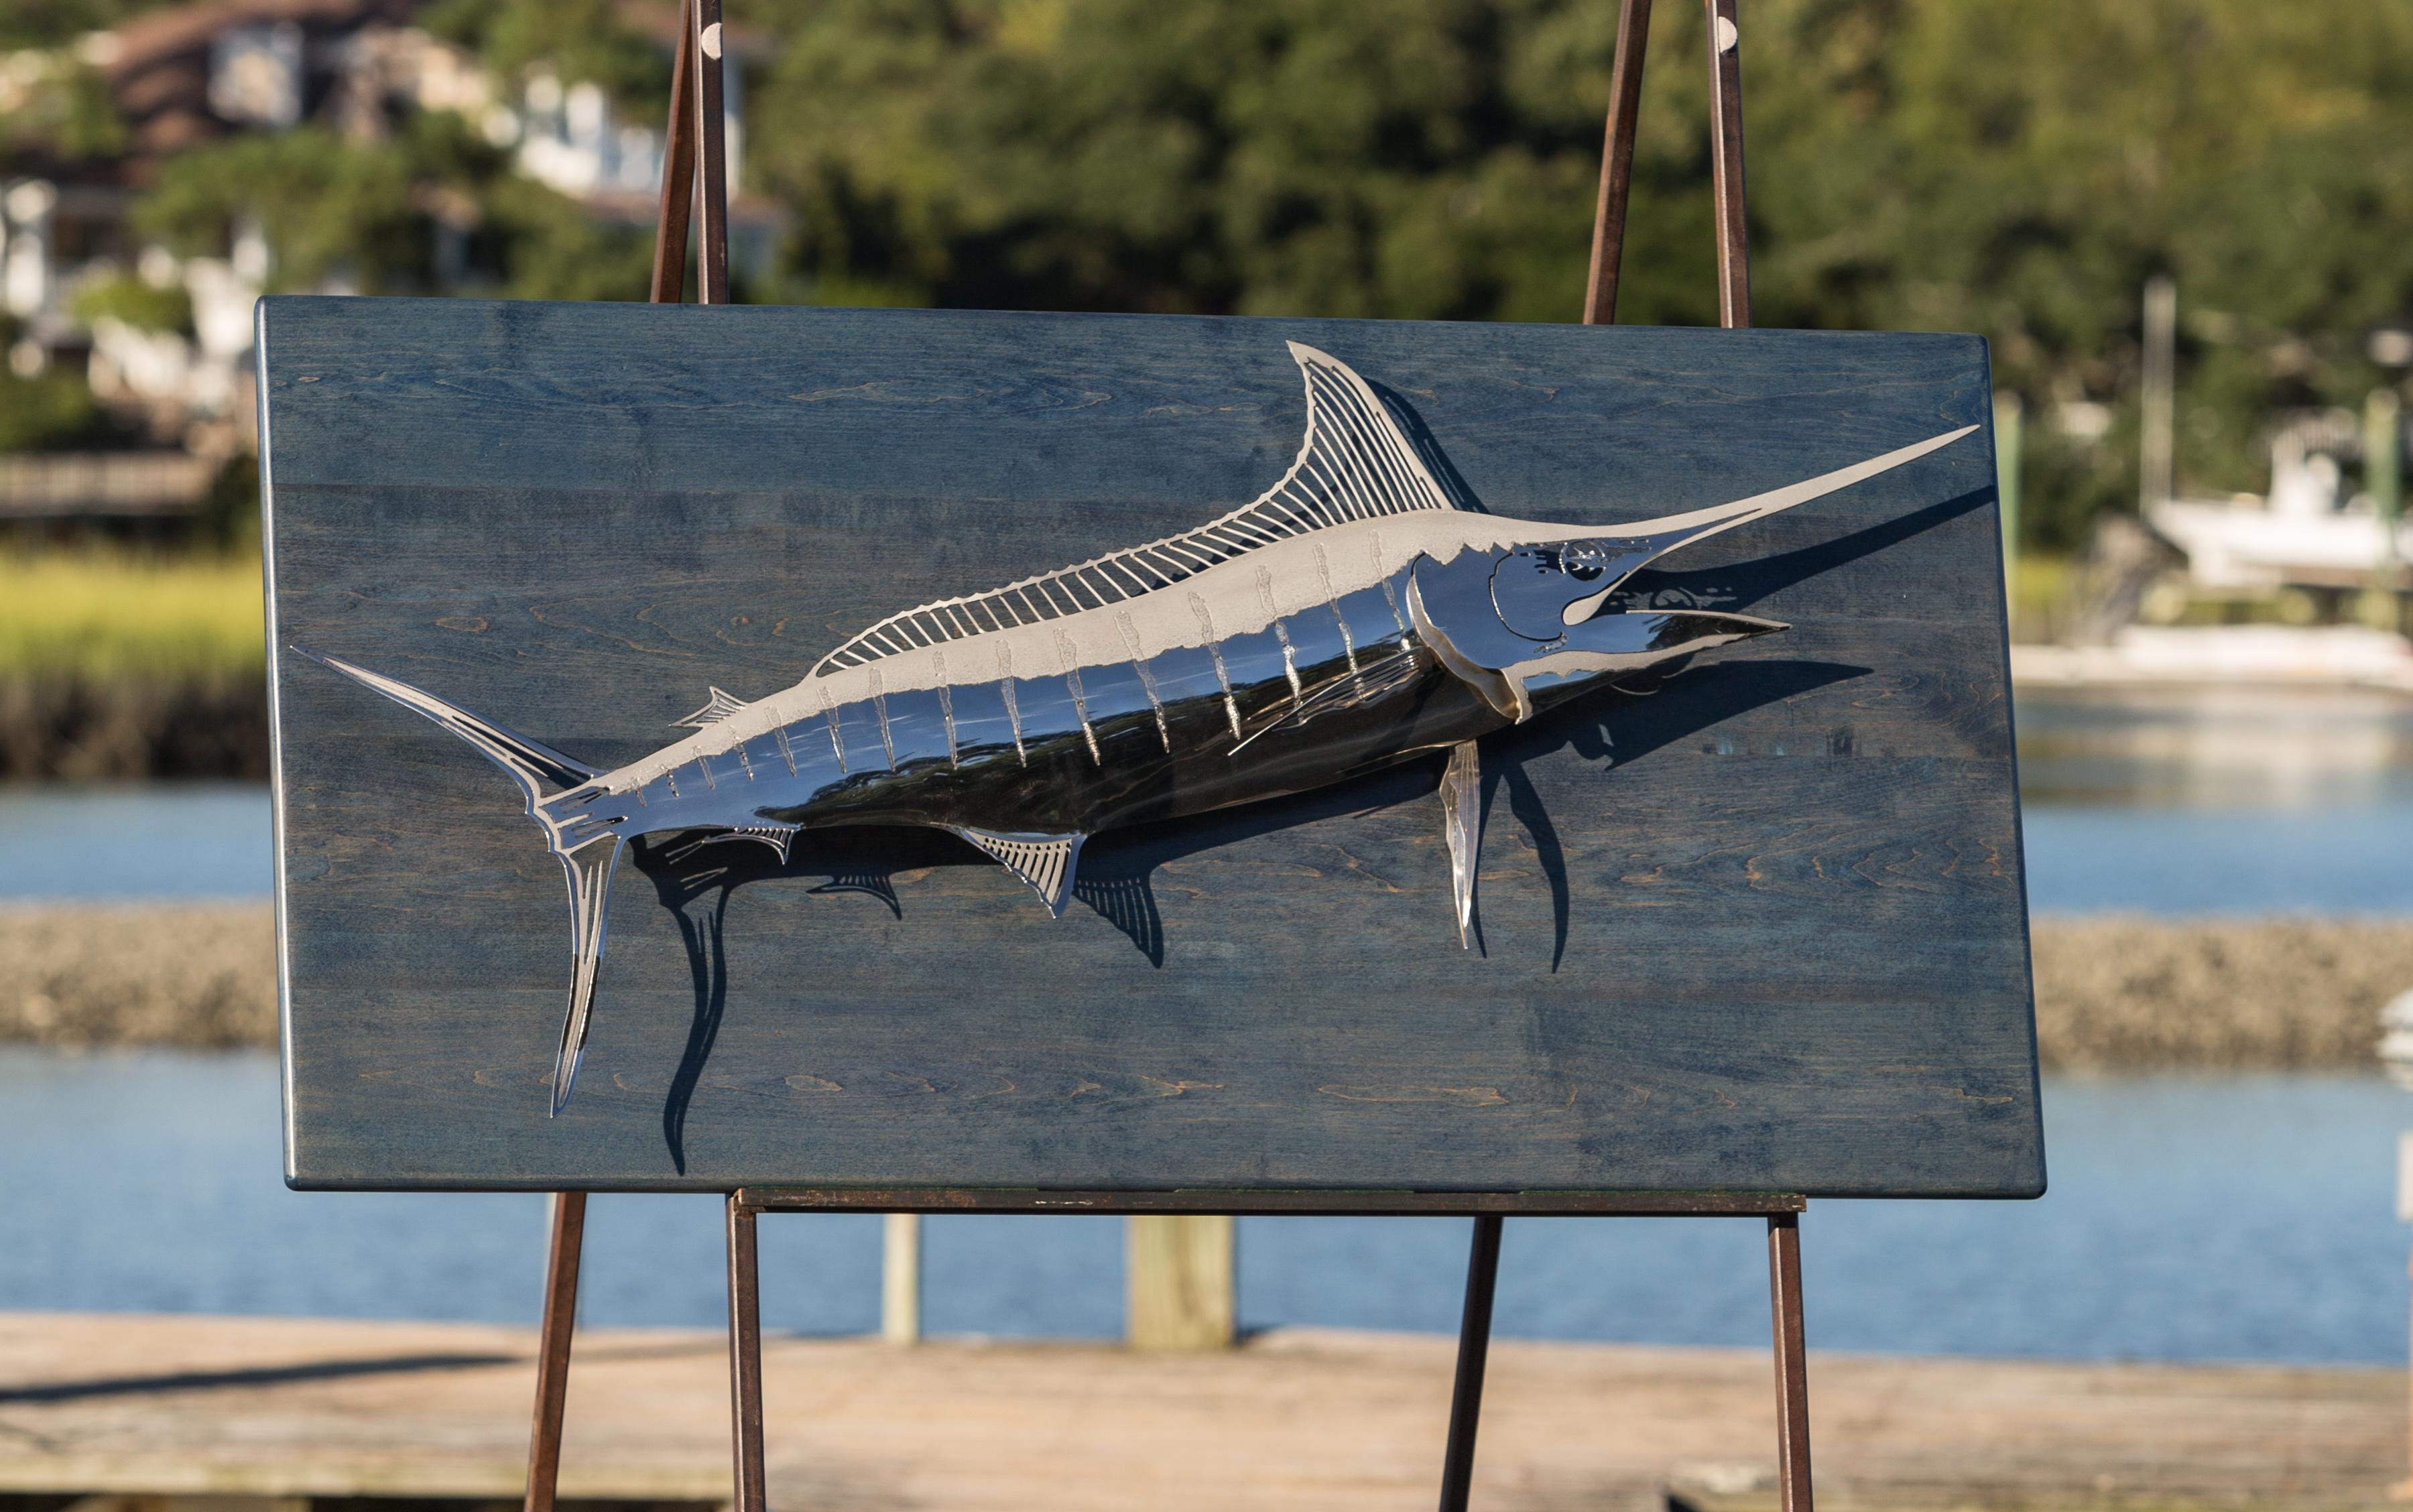 Custom Artwork, Sculptures And Furniture Gallery Inside Stainless Steel Fish Wall Art (Image 11 of 20)